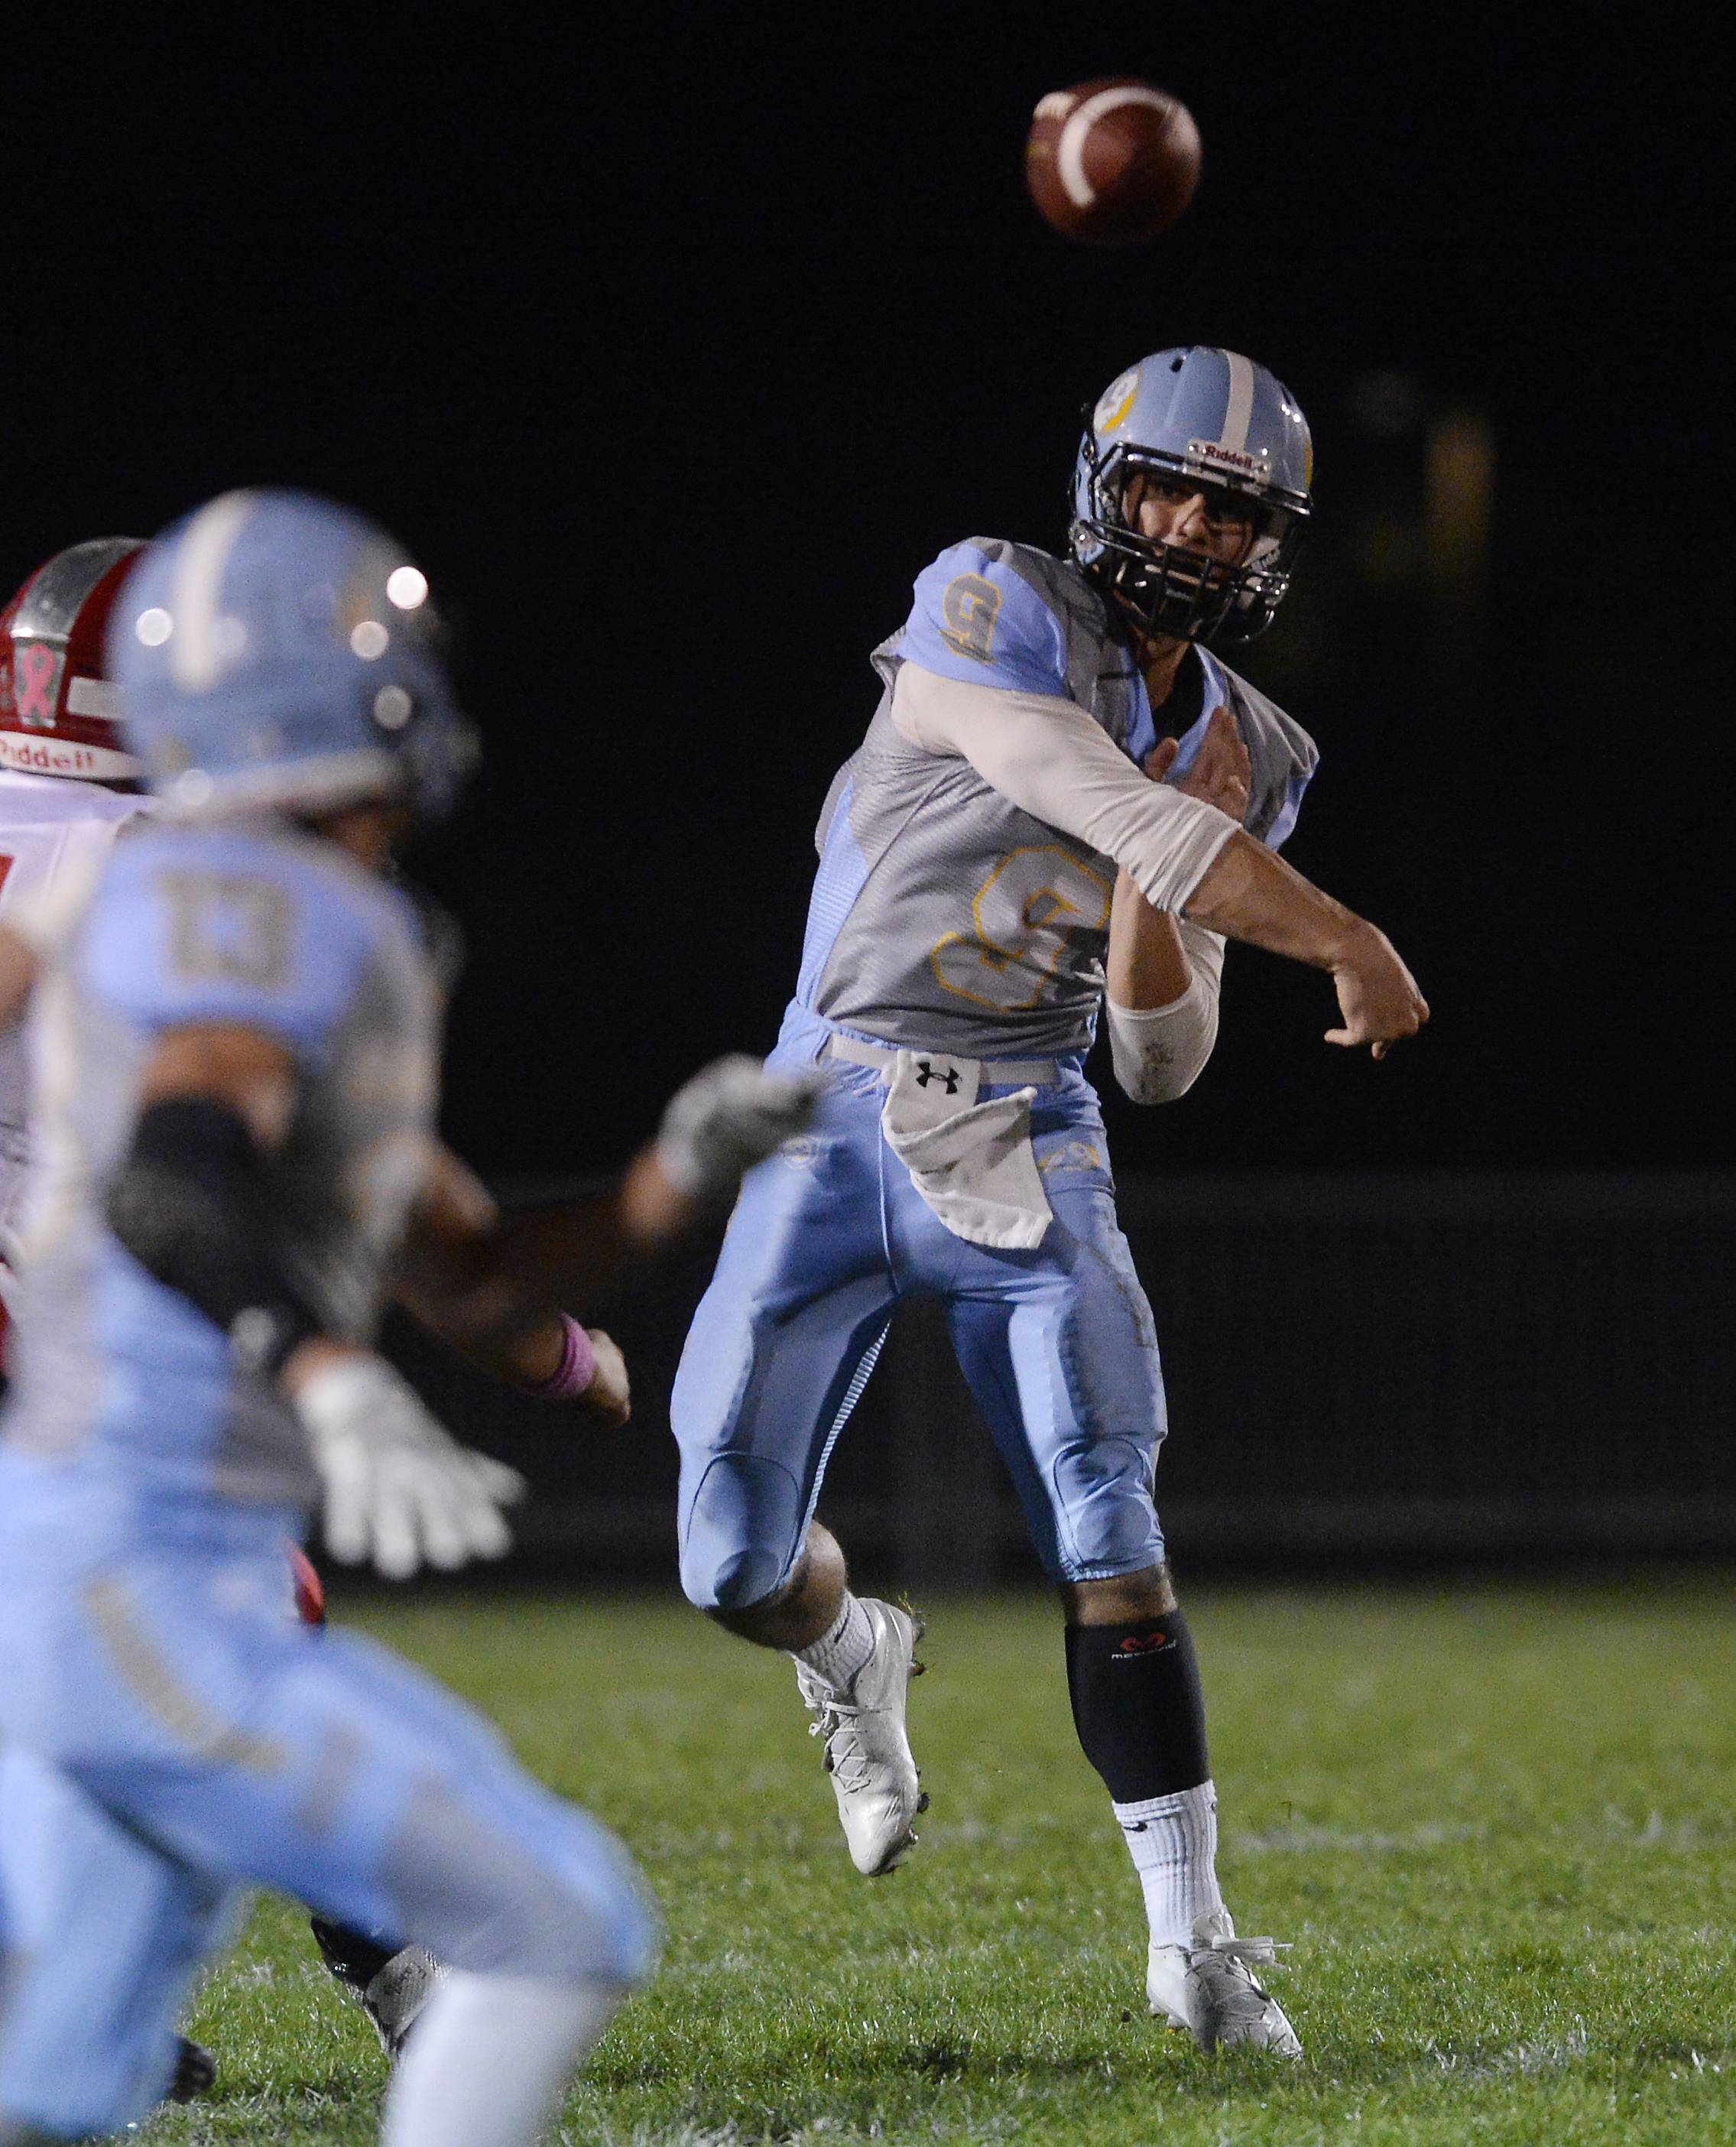 Maine West quarterback George Markakis passes to Rafael Ynocencio but has the play broken up by Deerfield's defense in the first quarter Friday.